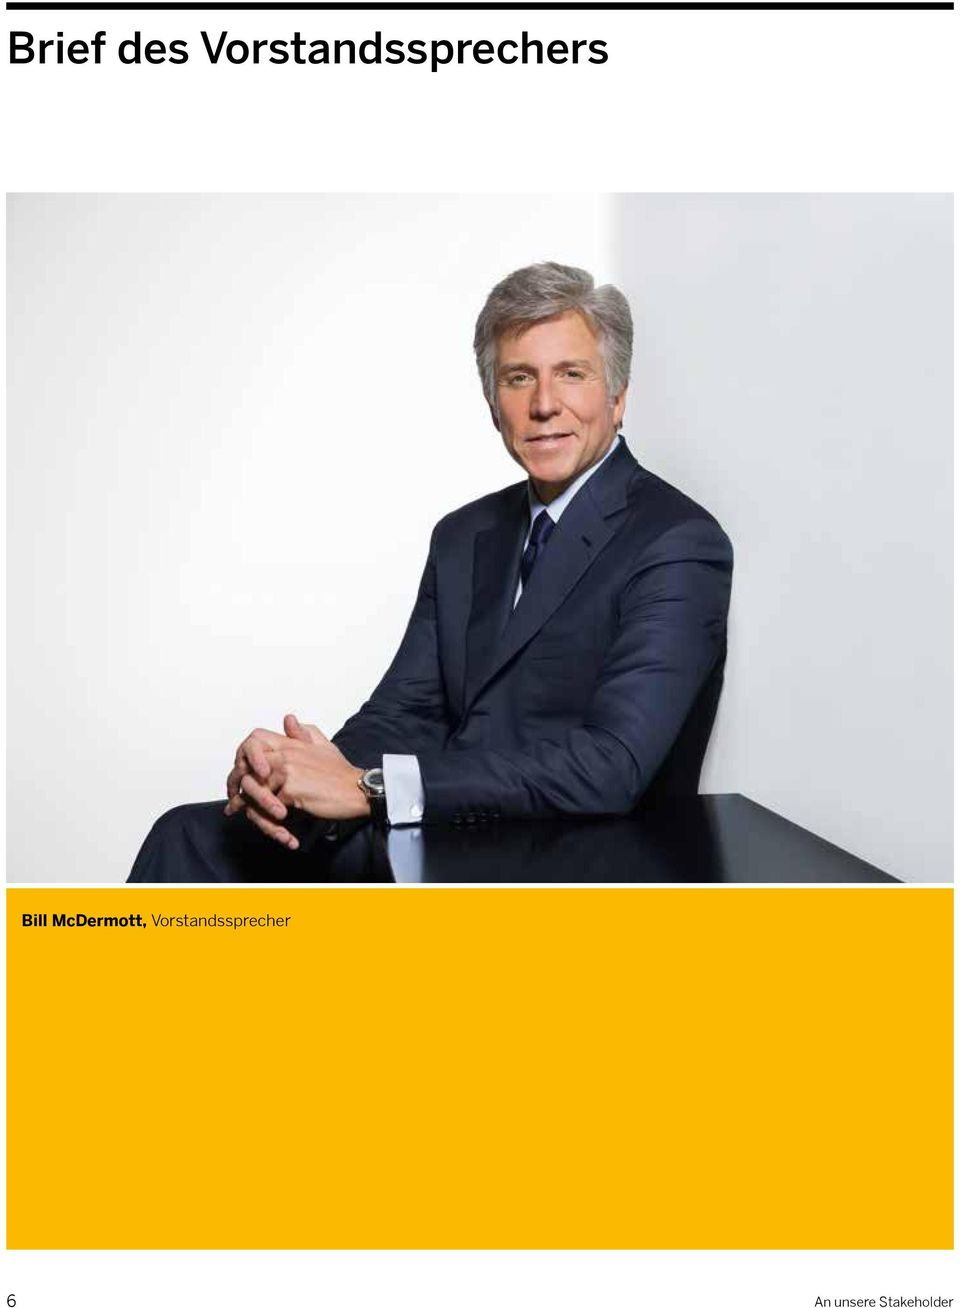 Bill McDermott,